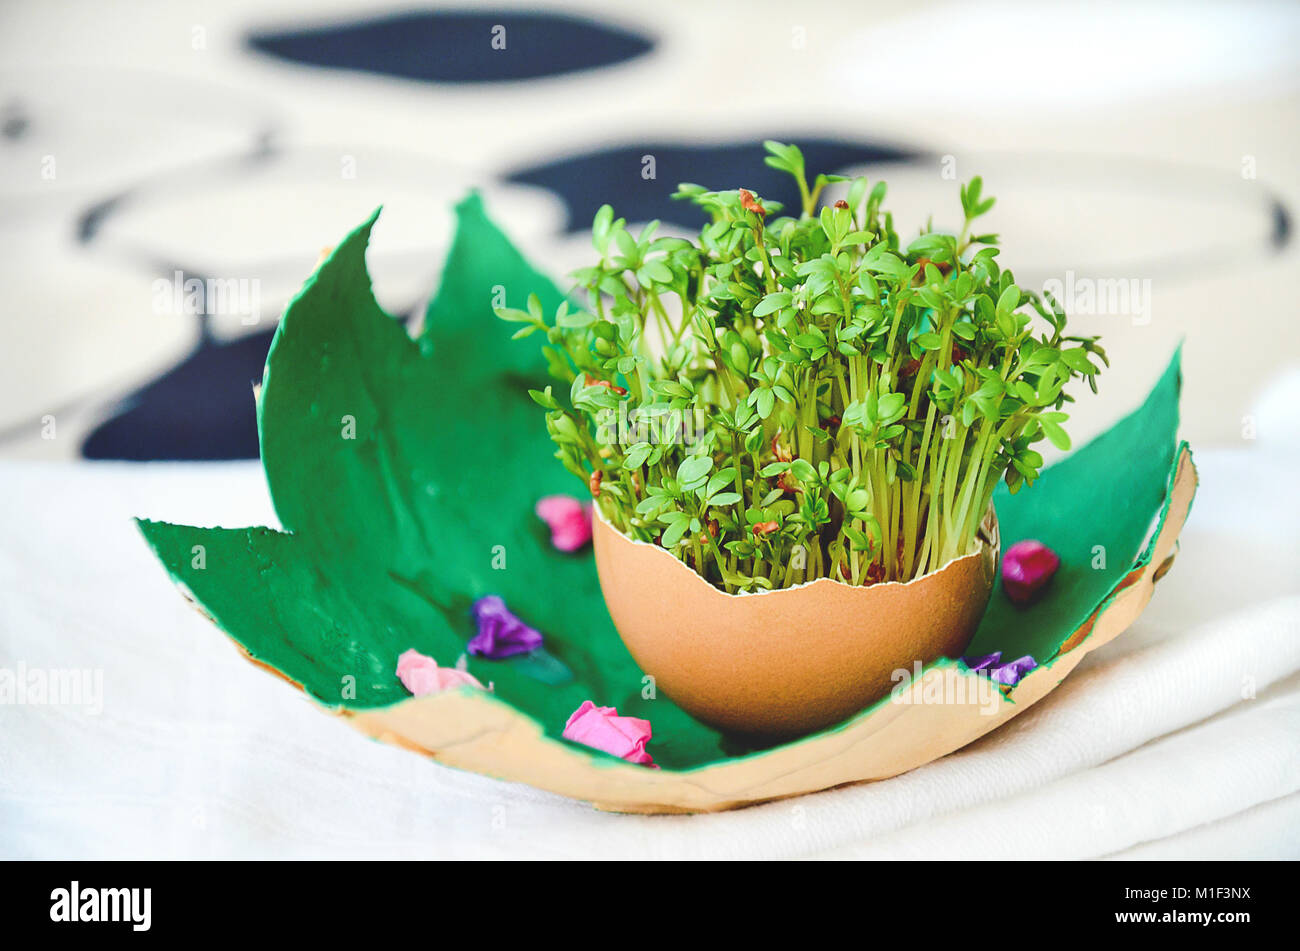 Watercress Salad Growing In Egg Shell Arranged As Table Decoration